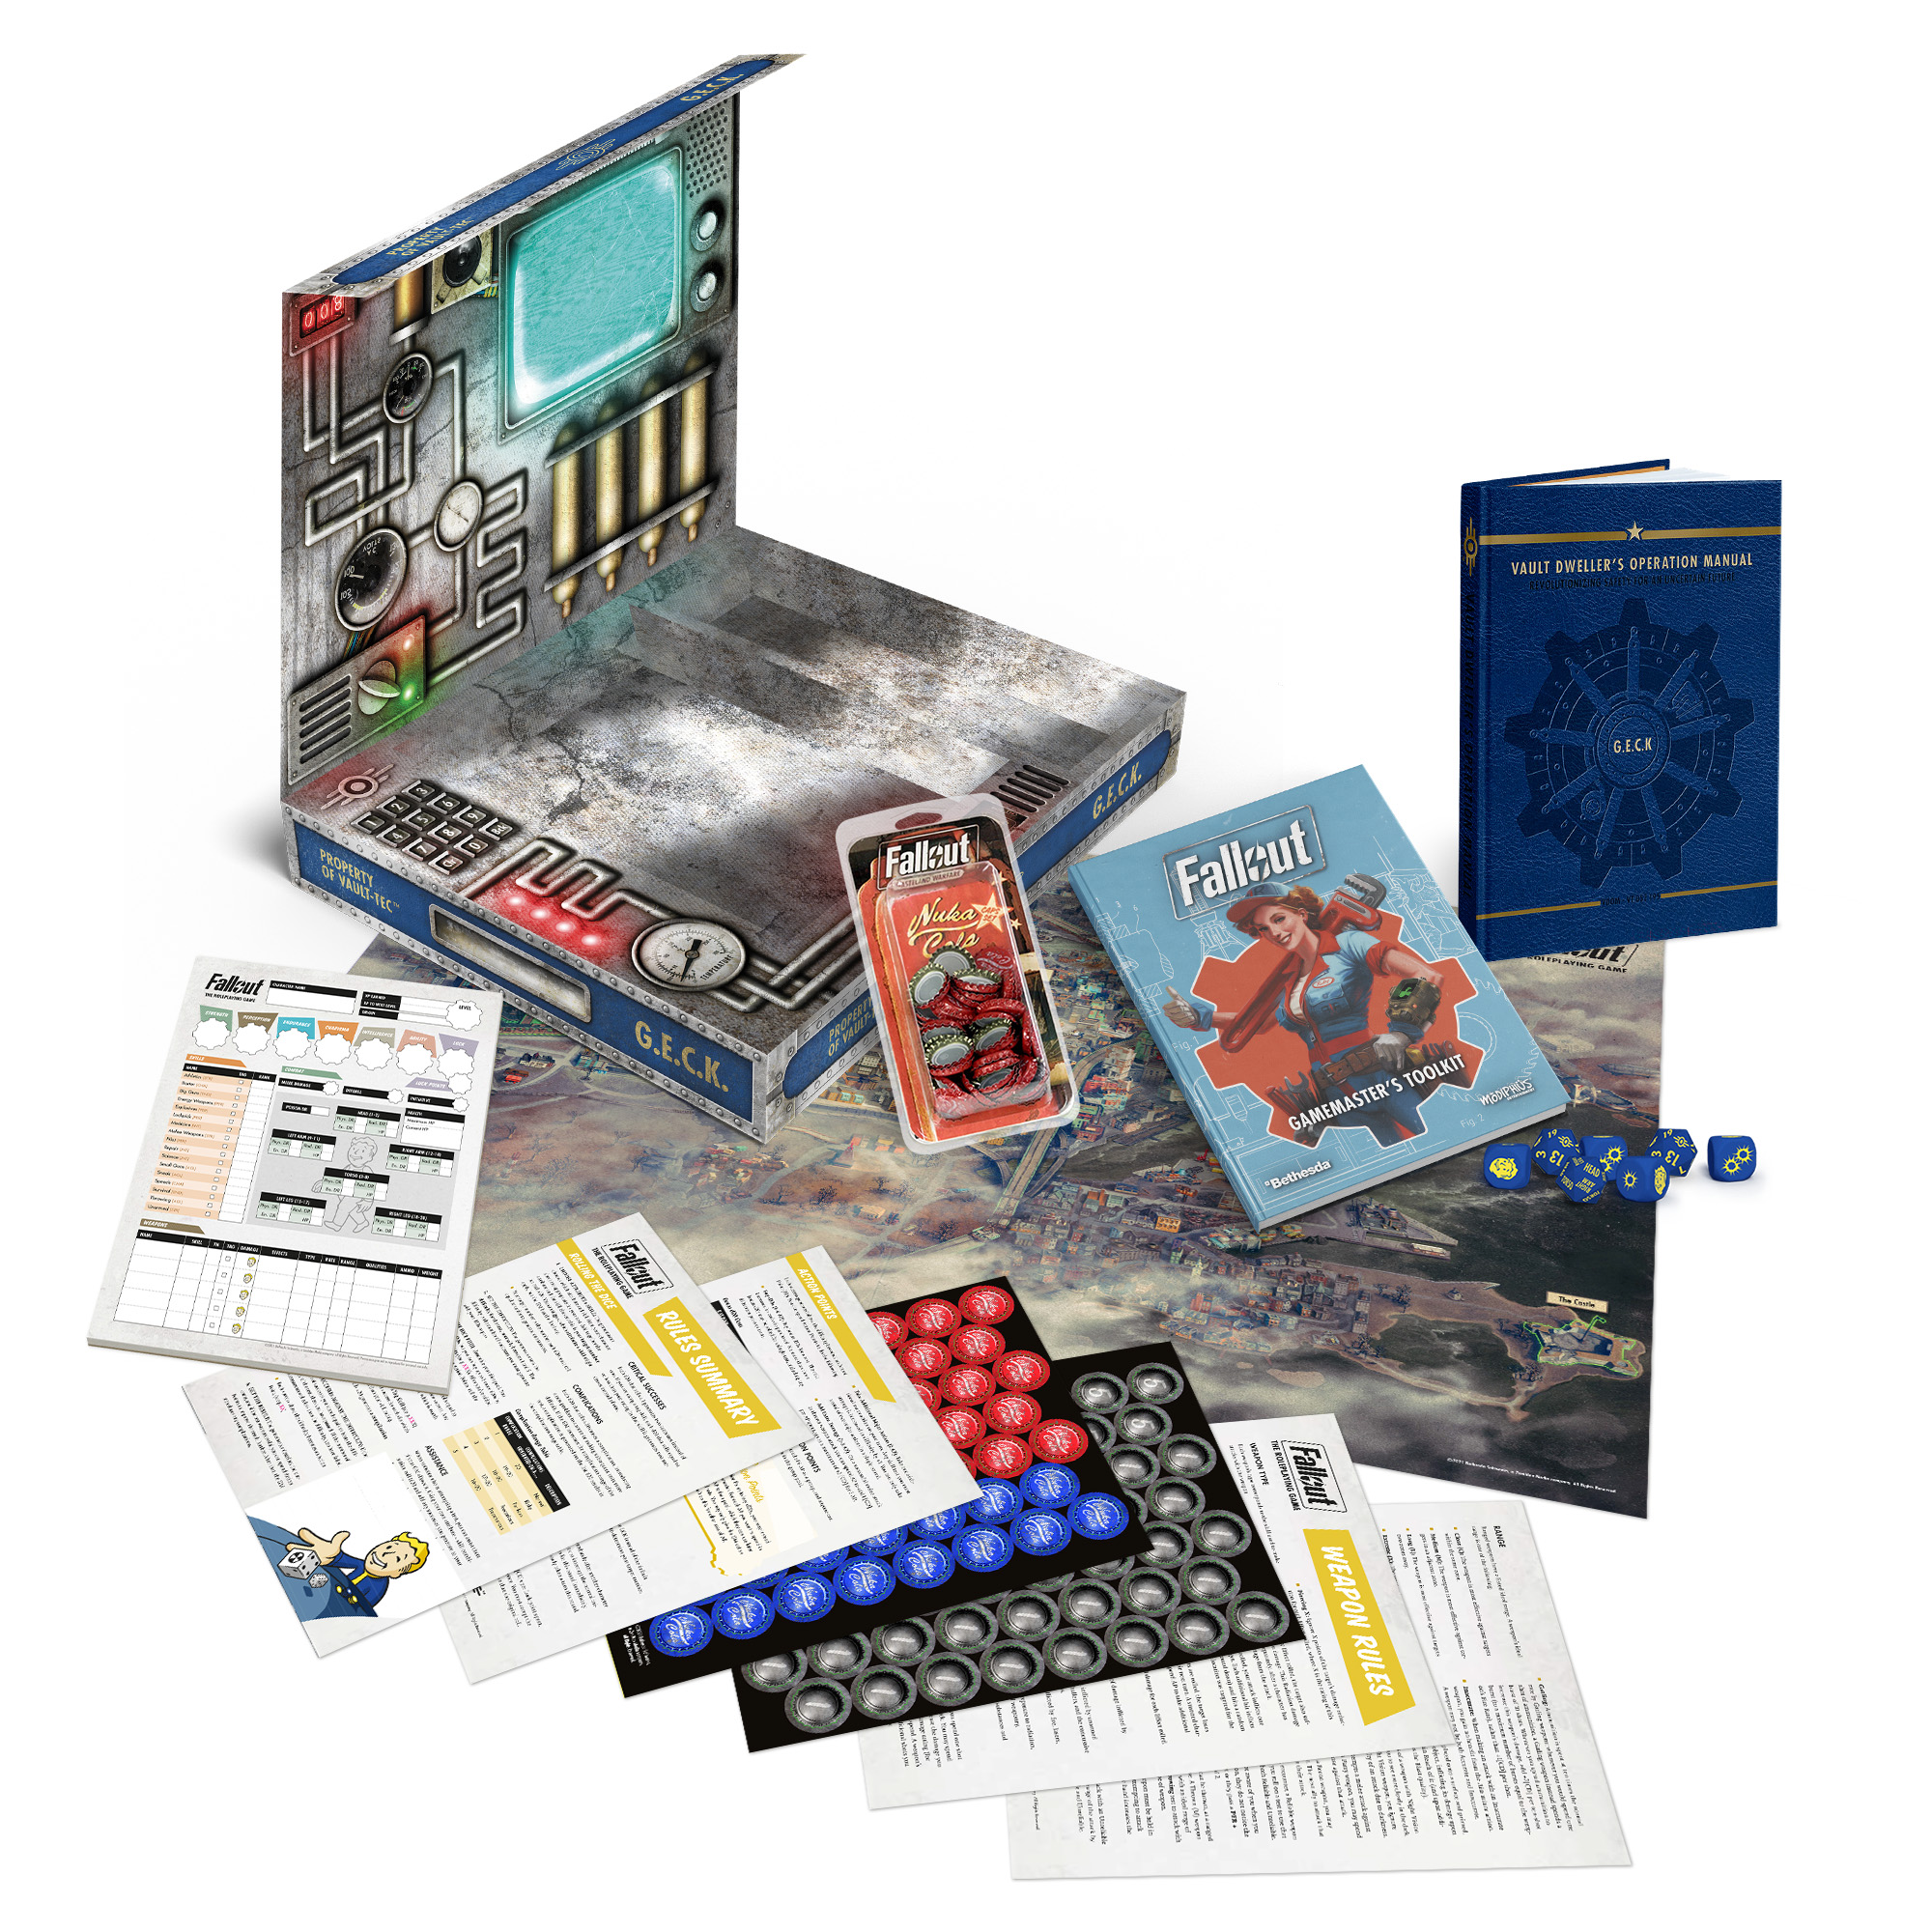 An image of the book and box for Fallout: The Roleplaying Game, a tabletop RPG based on the Fallout series.